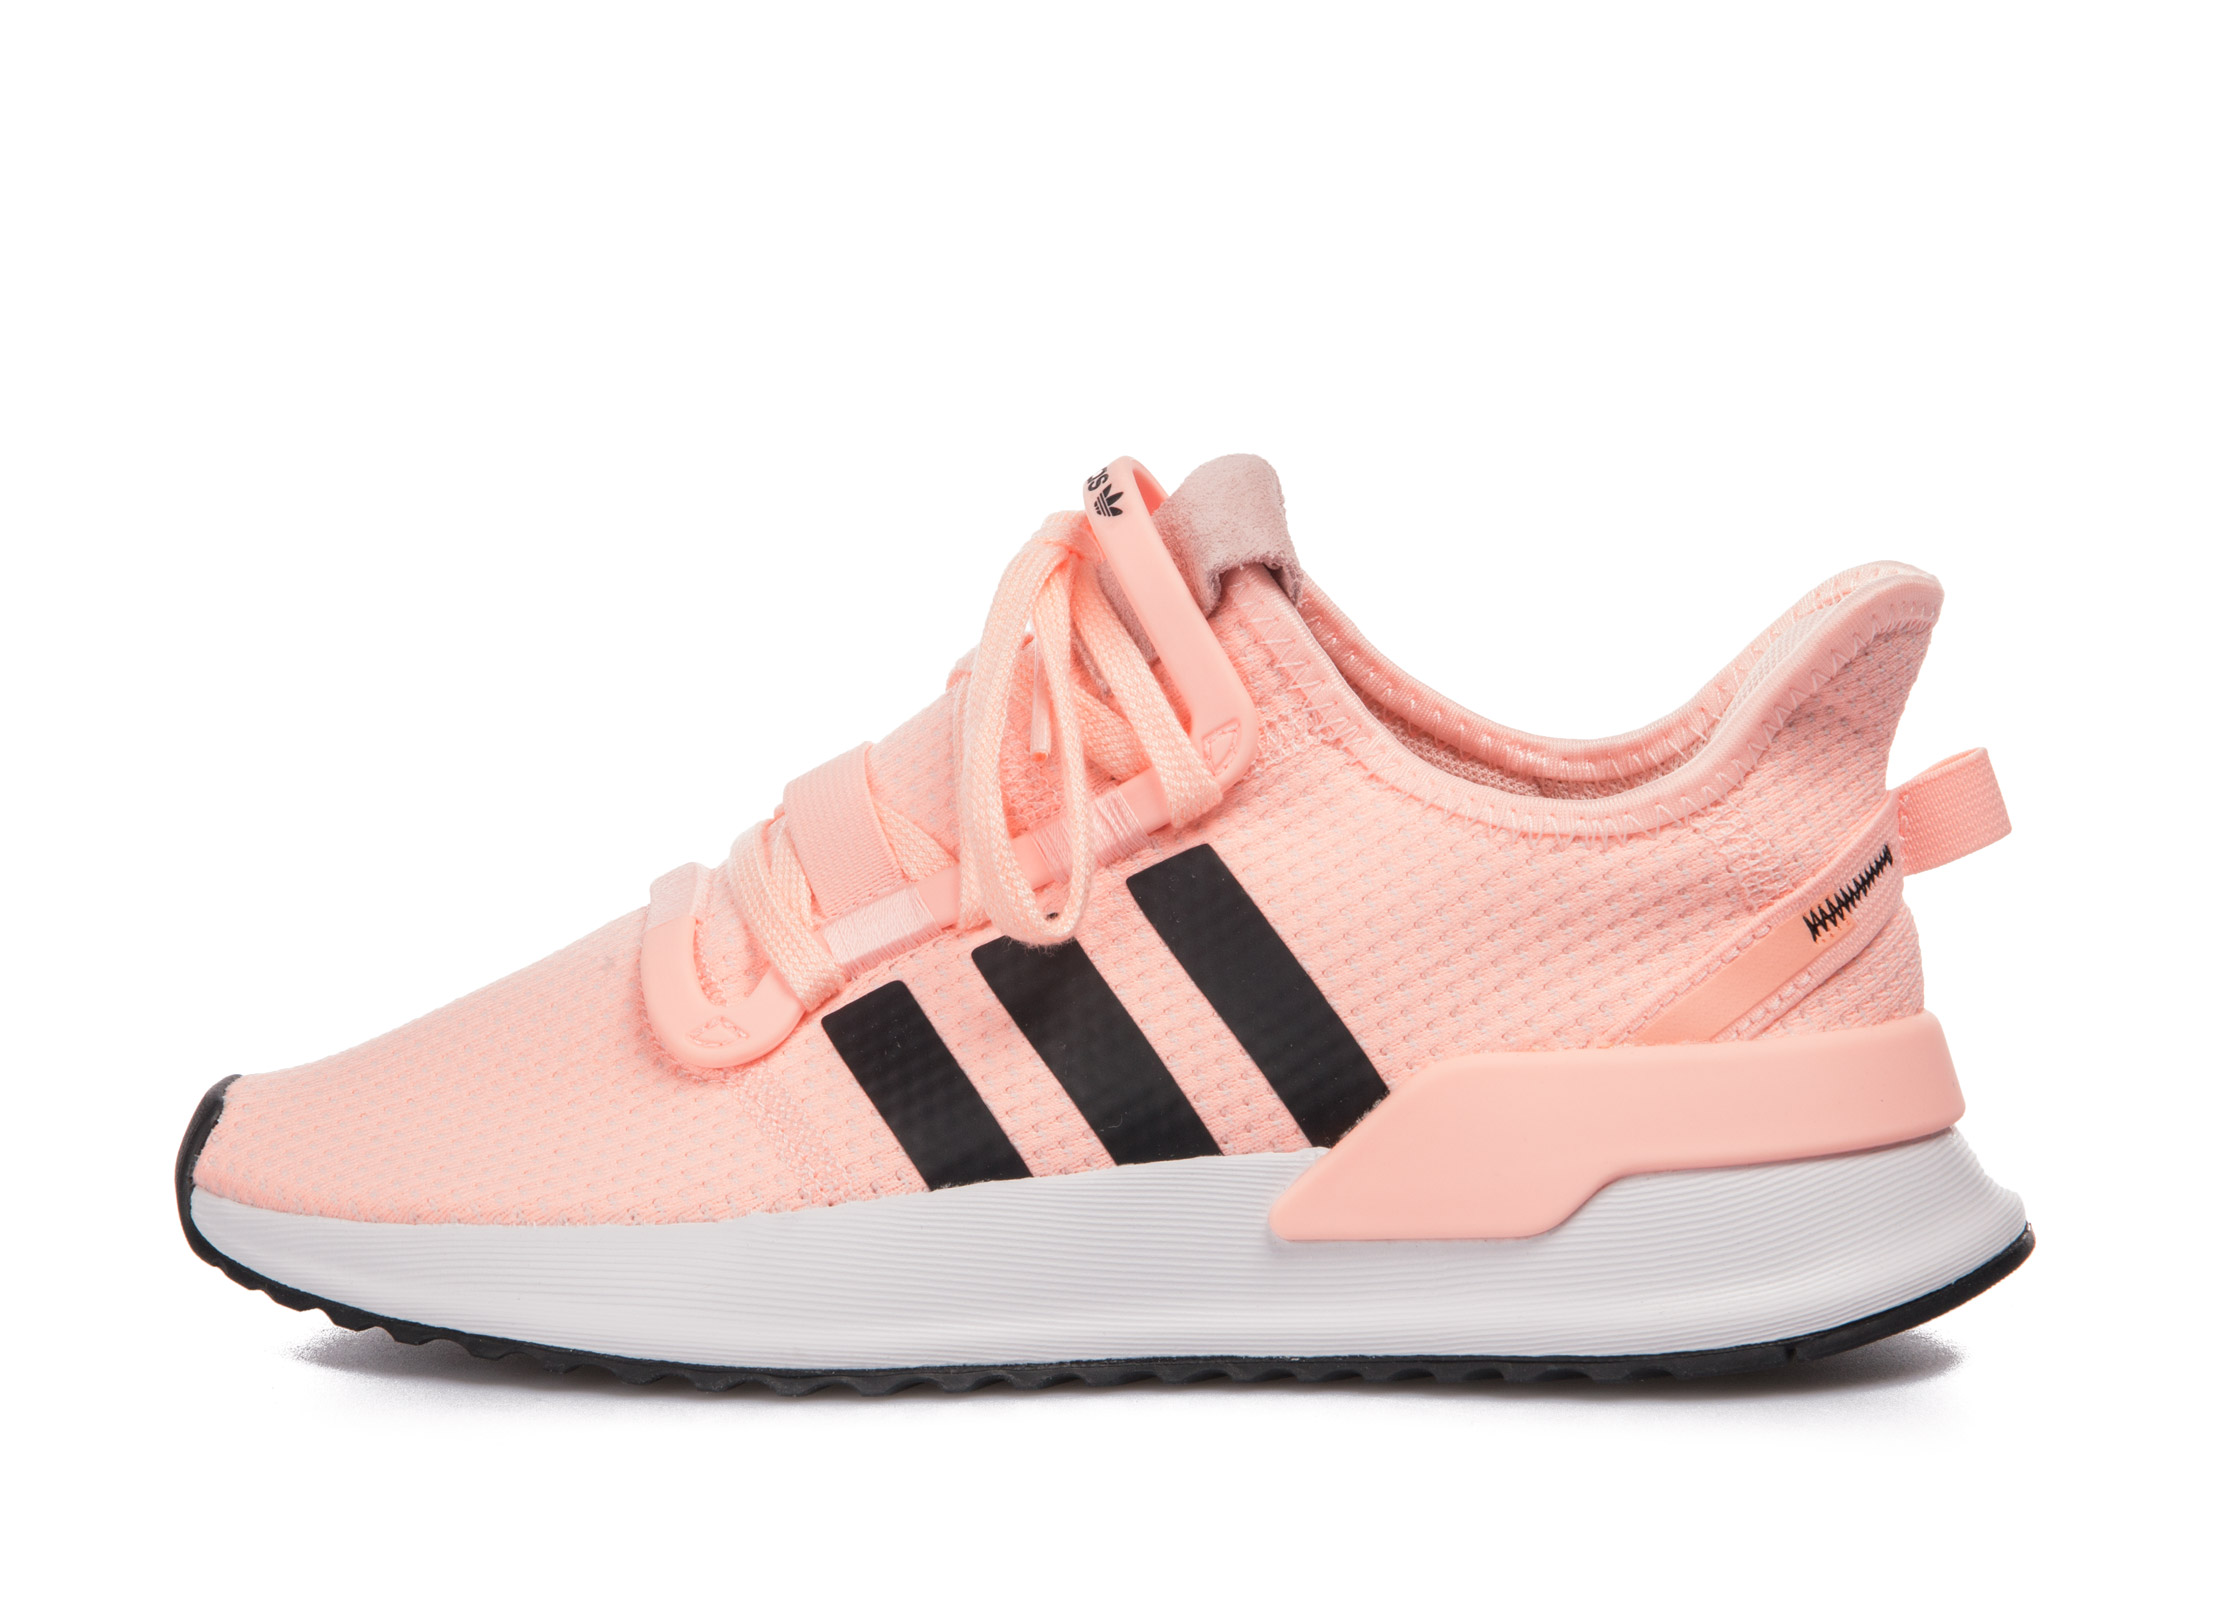 adidas Originals U PATH RUN W G27996 Σομόν